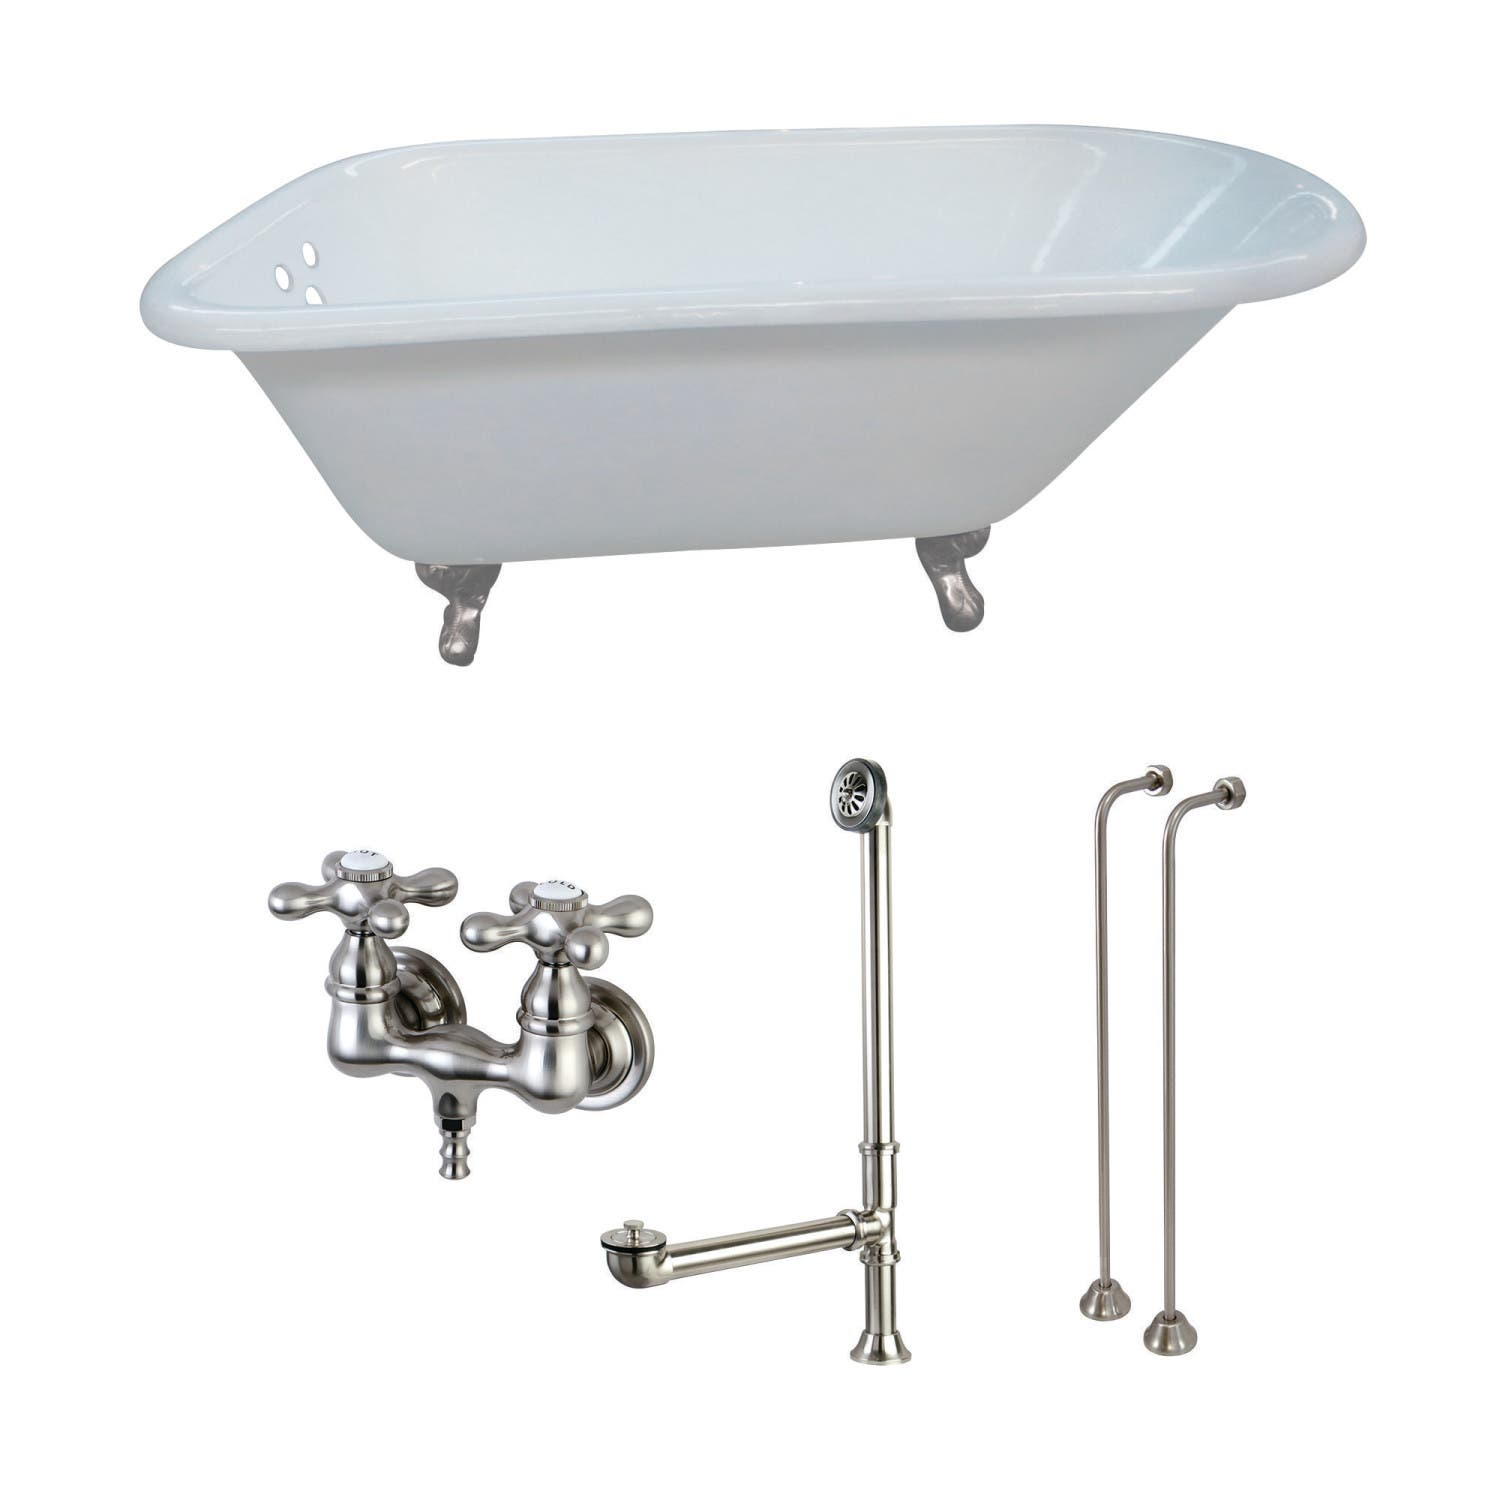 Kingston Brass Aqua Eden 54 Inch Cast Iron Clawfoot Tub With Faucet